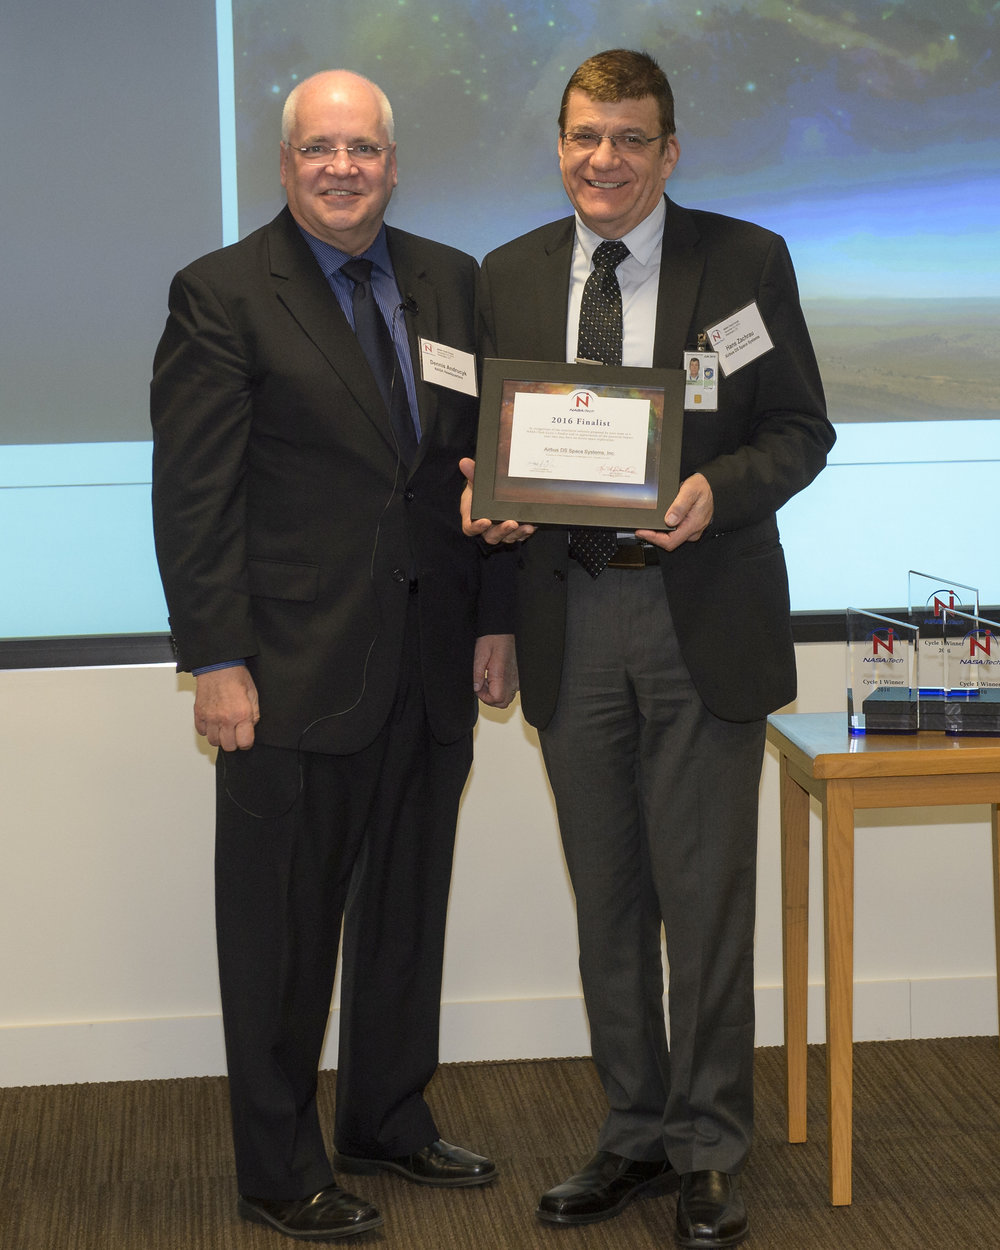 Hans Zachrau, from Airbus DS Space Systems, MAPT Team, accepts a certificate from Acting Chief Technologist Dennis Andrucyk recognizing the organization as a 2016 NASA iTech finalist.